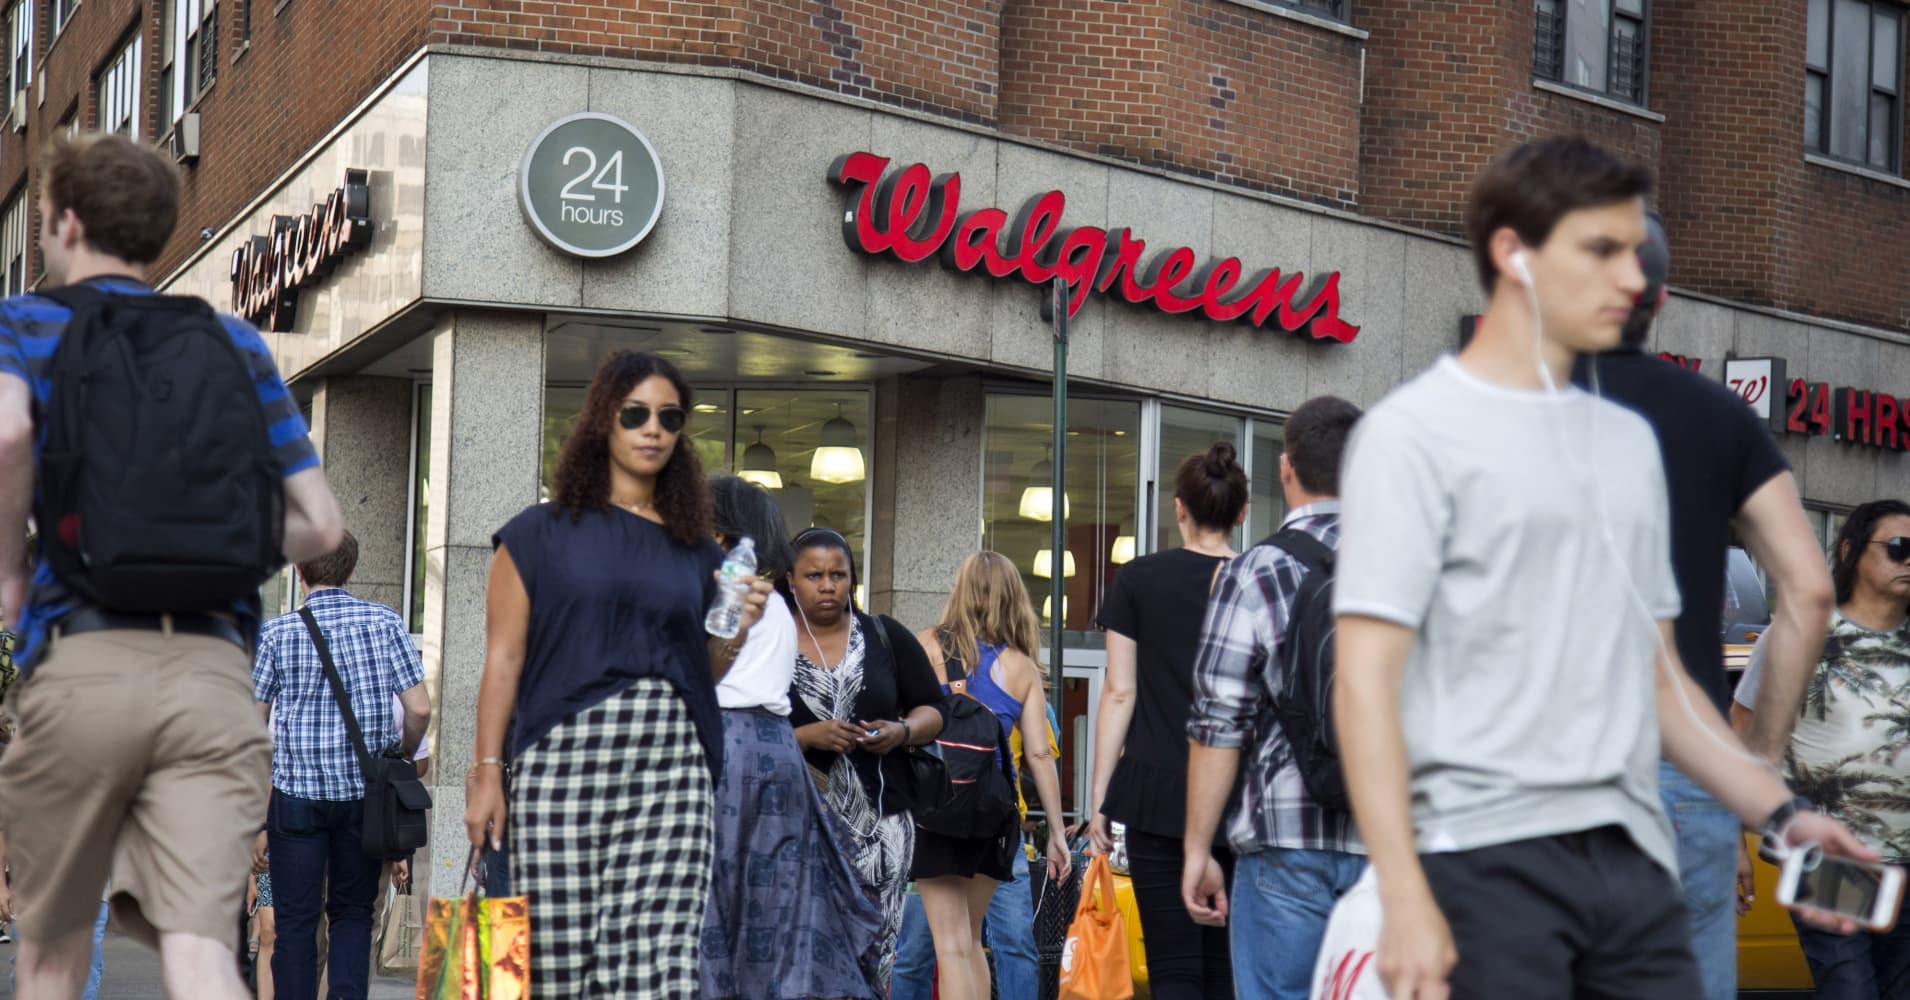 Walgreens launches next-day prescription delivery with FedEx to compete with Amazon